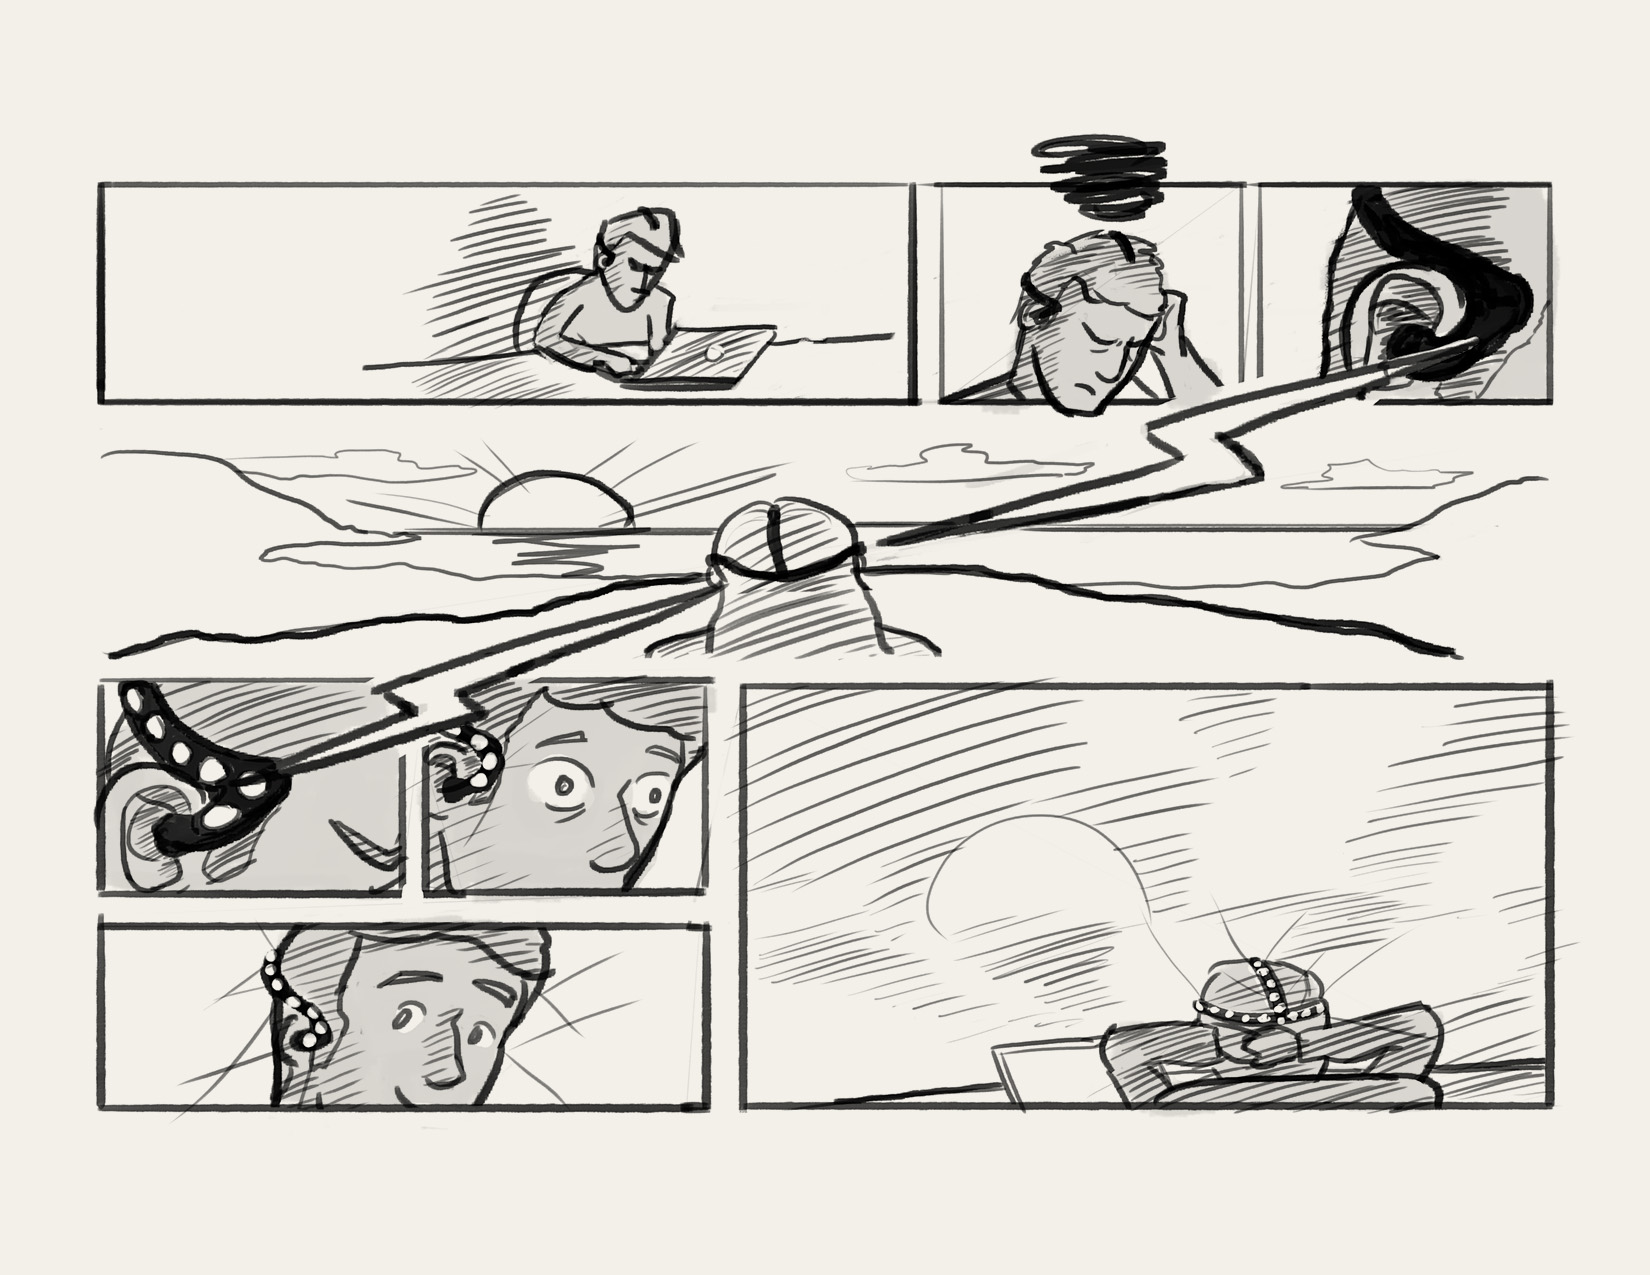 Rough storyboard sketch